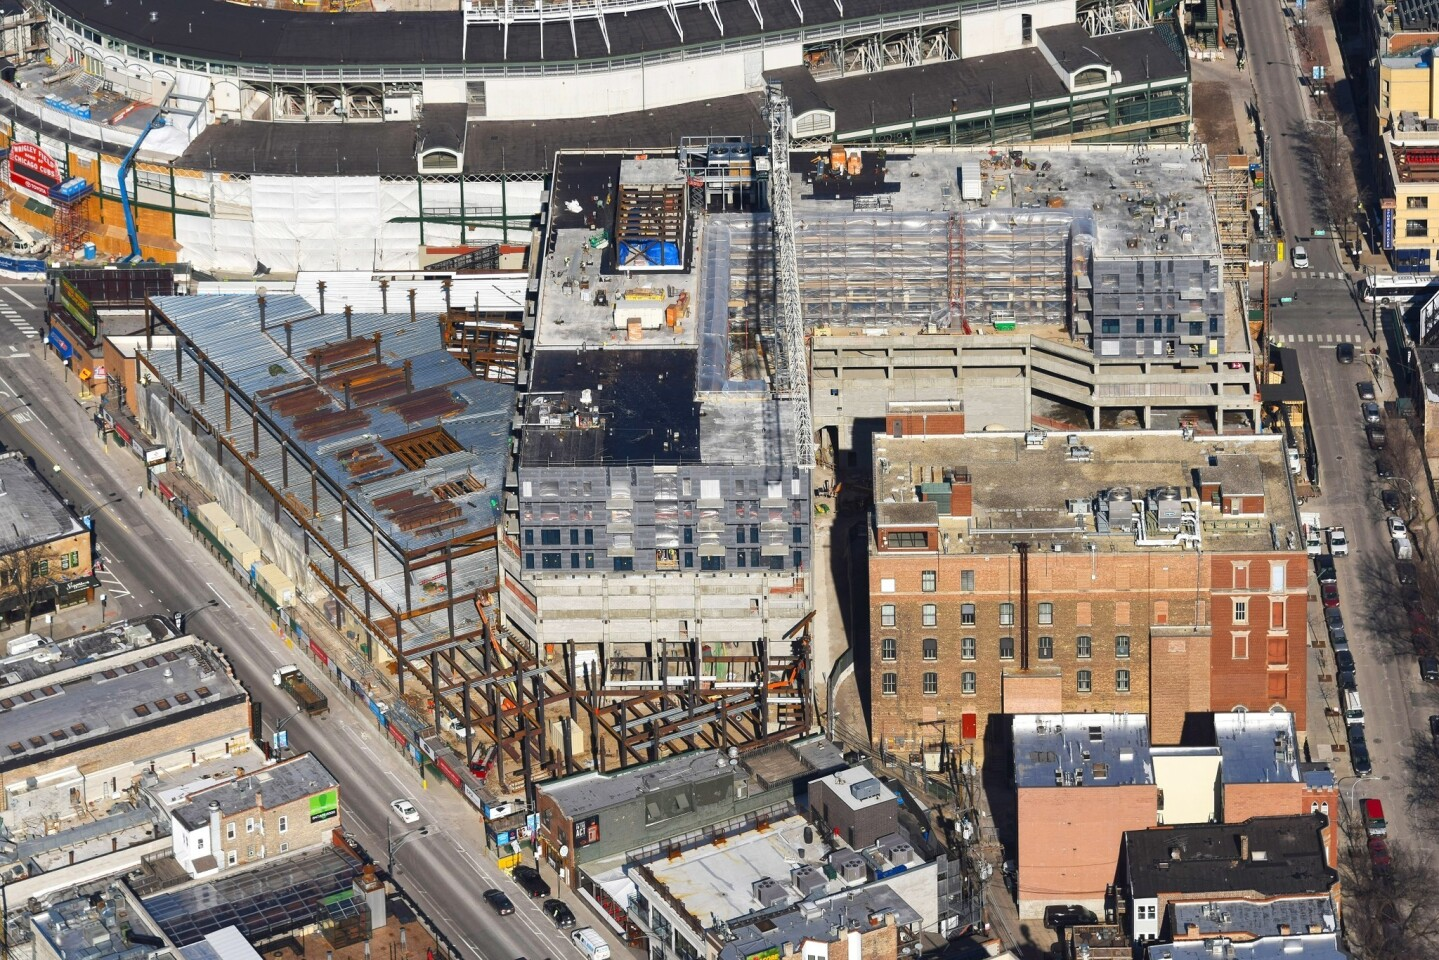 An aerial view shows the Addison & Clark development, which is under construction in Wrigleyville. It will have 148 apartments and 150,000 square feet of retail.